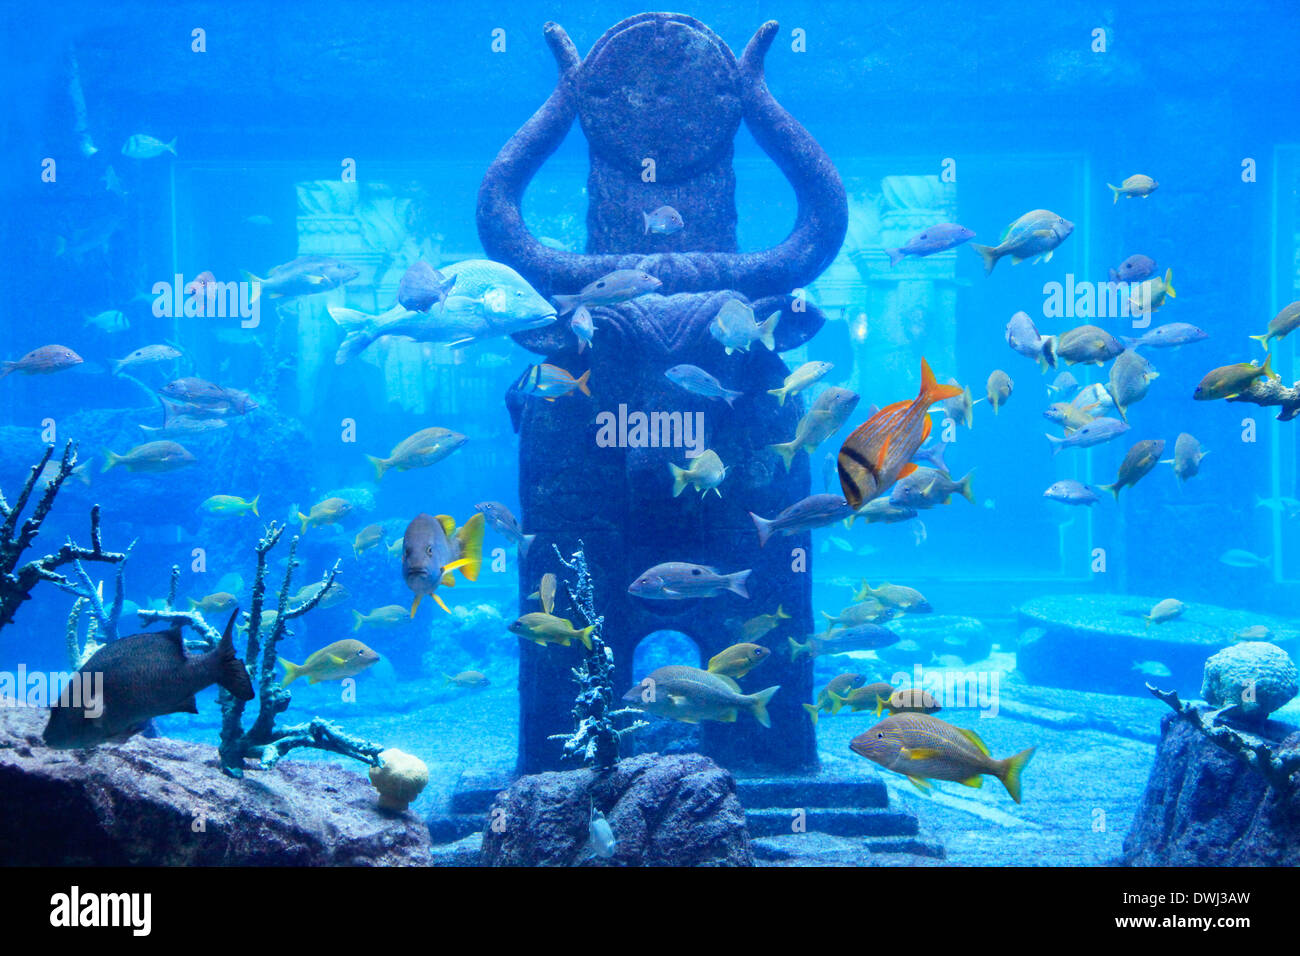 Aquarium in Bahamas, Paradis Island - Stock Image